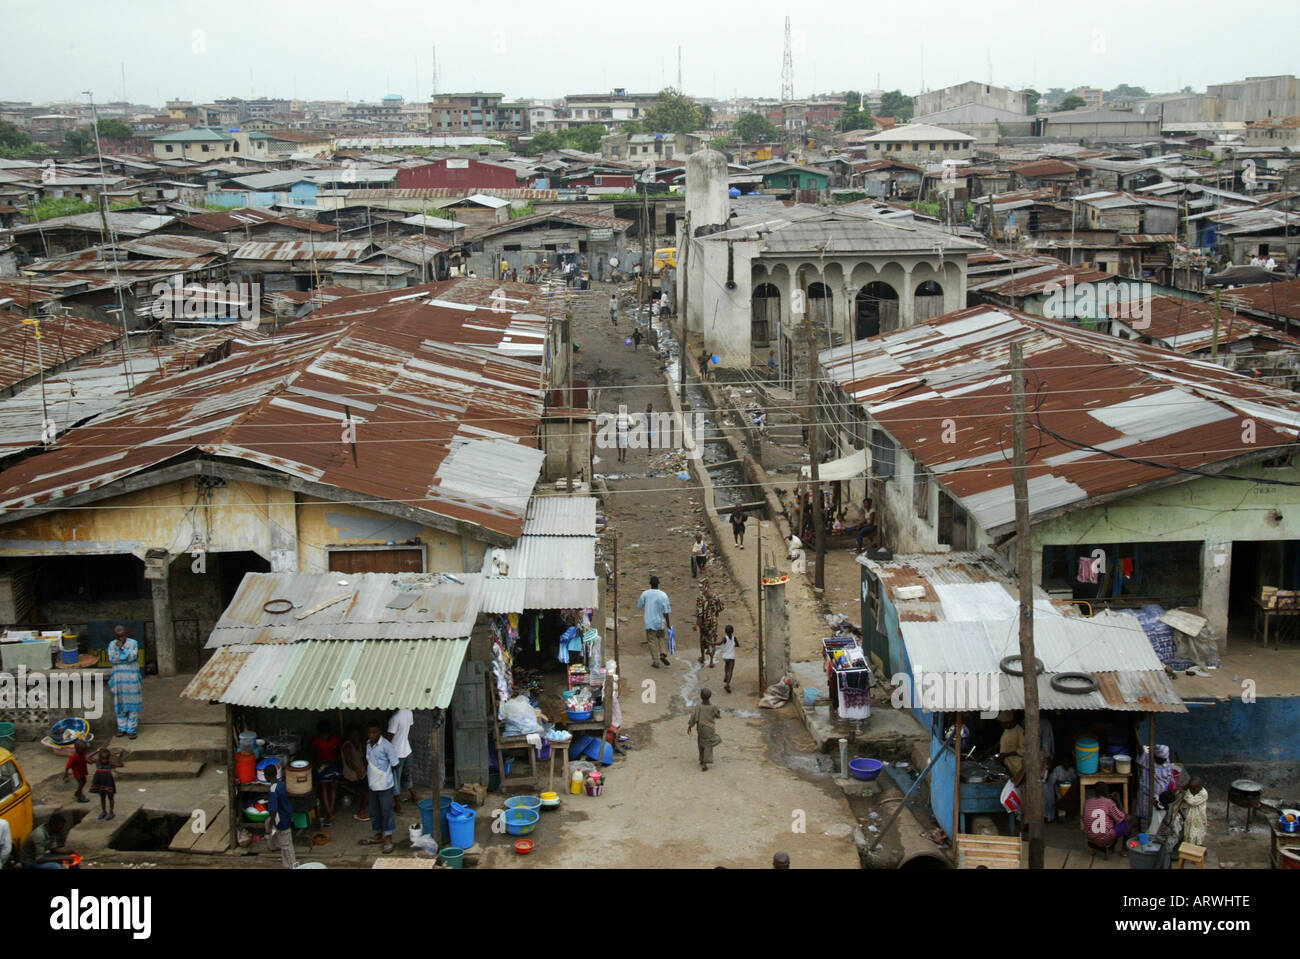 Nigeria: the wealthy have moved to the new capital Abuja: Lagos has become poor - Stock Image